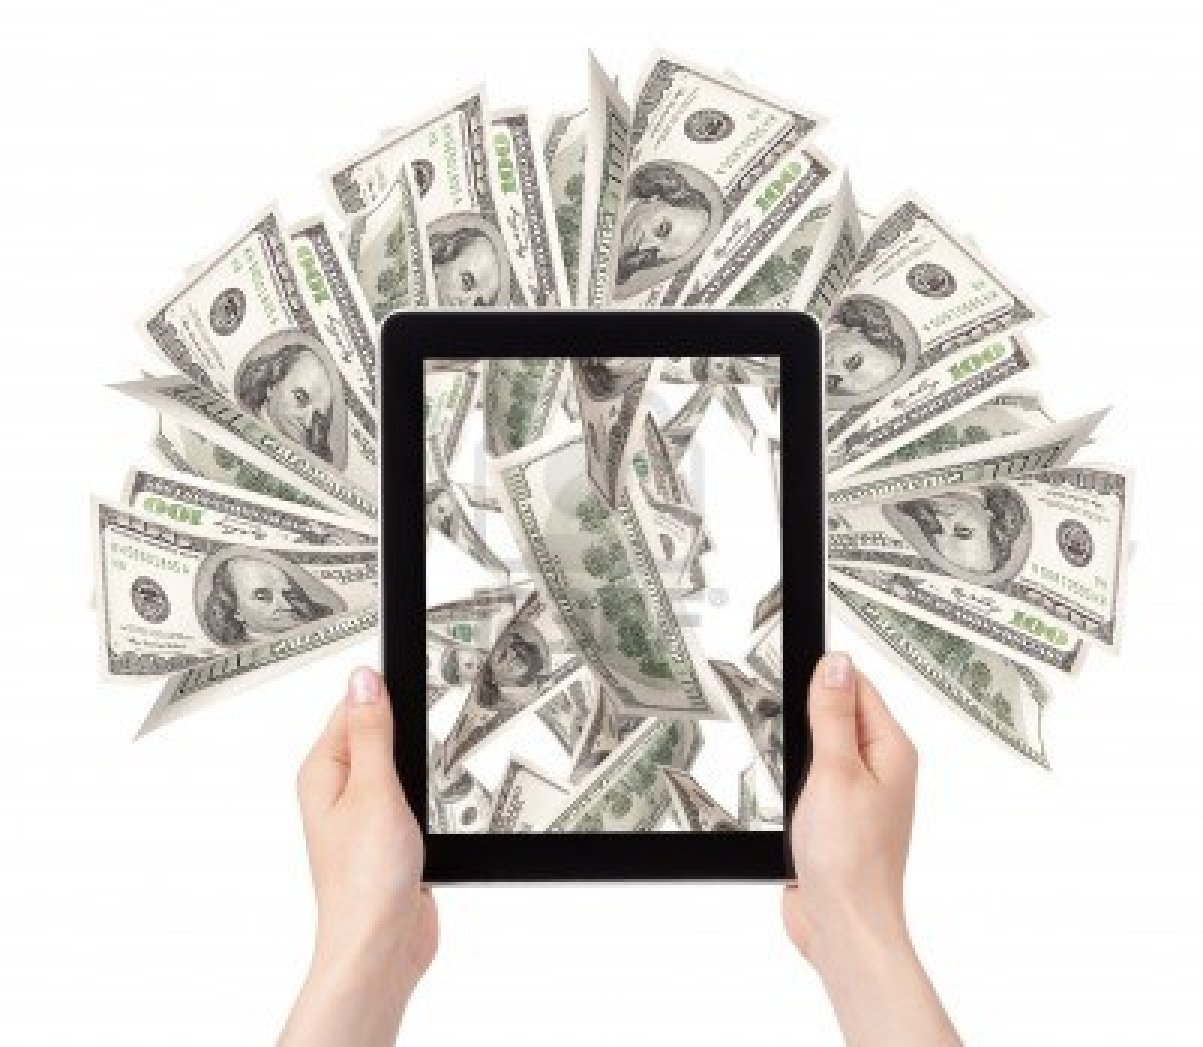 16281144-lot-of-money-on-a-tablet-pc-screen-with-woman-hands-isolated-on-a-white-background.jpg